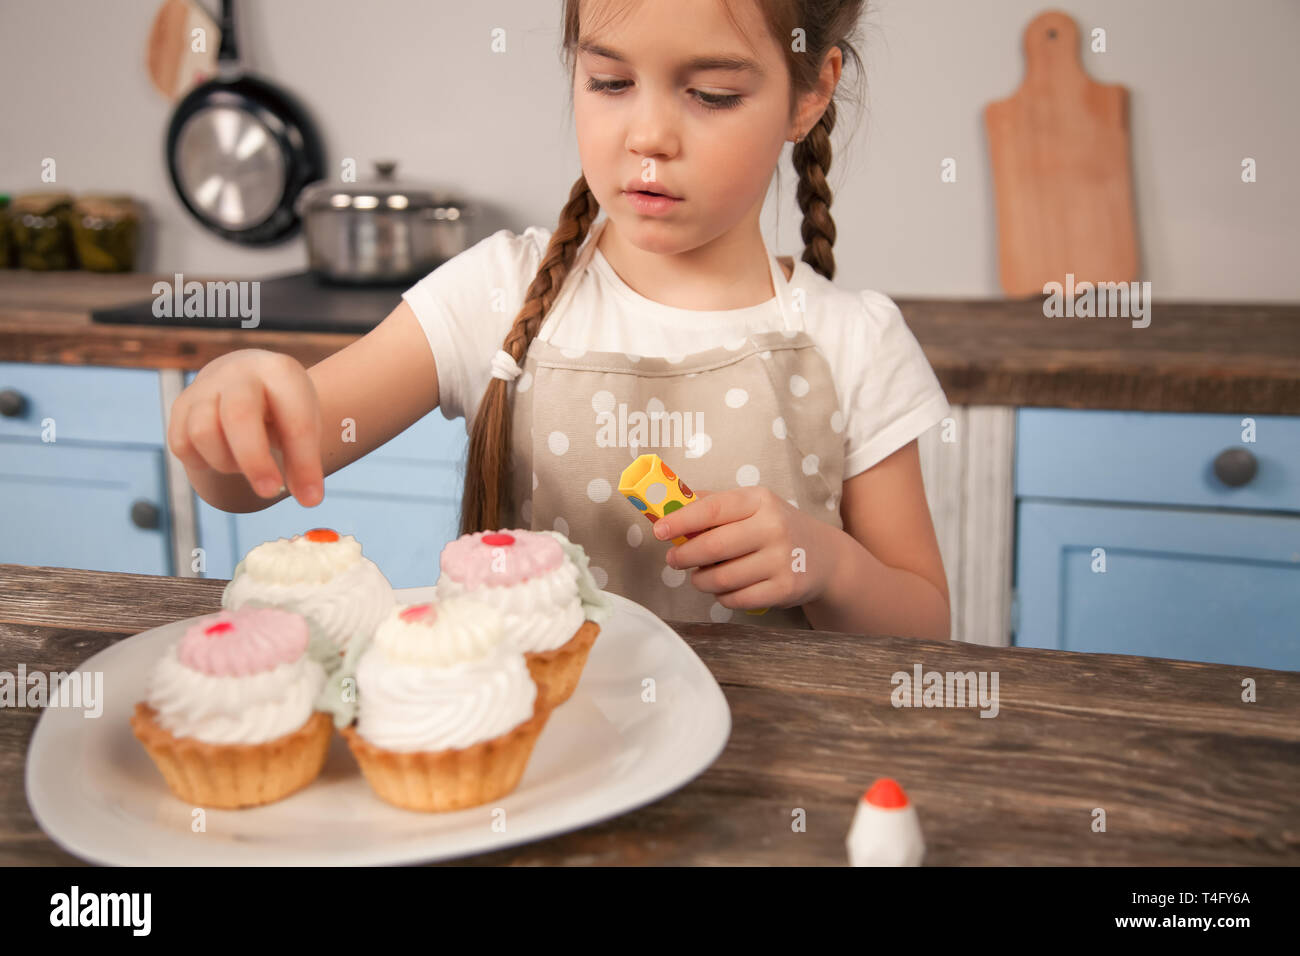 child daughter in the kitchen decorating cakes she is made with her mom. little helper, homemade food - Stock Image